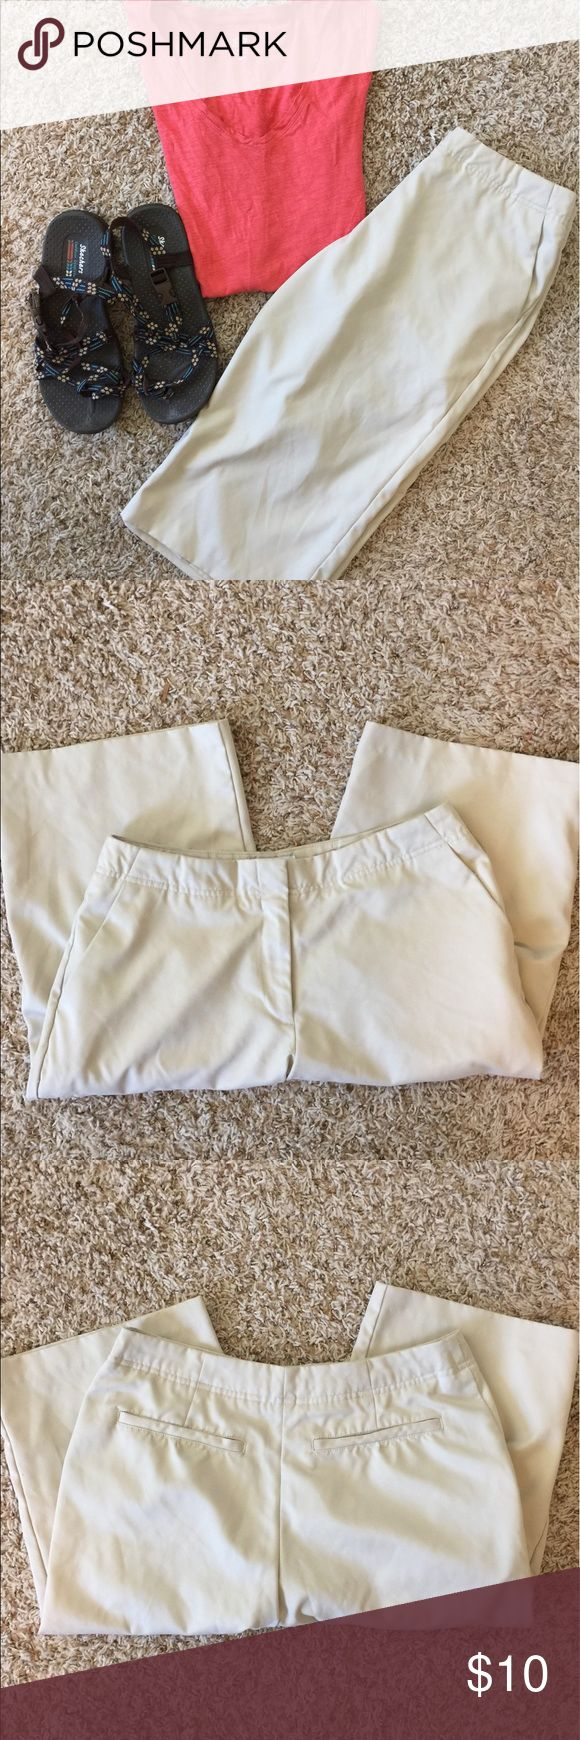 Lilly Of Beverly Hills Long Shorts Lilly Of Beverly Hills. Size 6. Not sure if they are long shorts or  short pants. I posted a picture of the inseam. They have a zipper pocket on side of one leg and two reg pockets. The material is very soft. Preowned in great condition with no known tears snags or stains. Comes from smoke free and clean home. Remember to save when you bundle. Thanks lilly of beverly hills Shorts